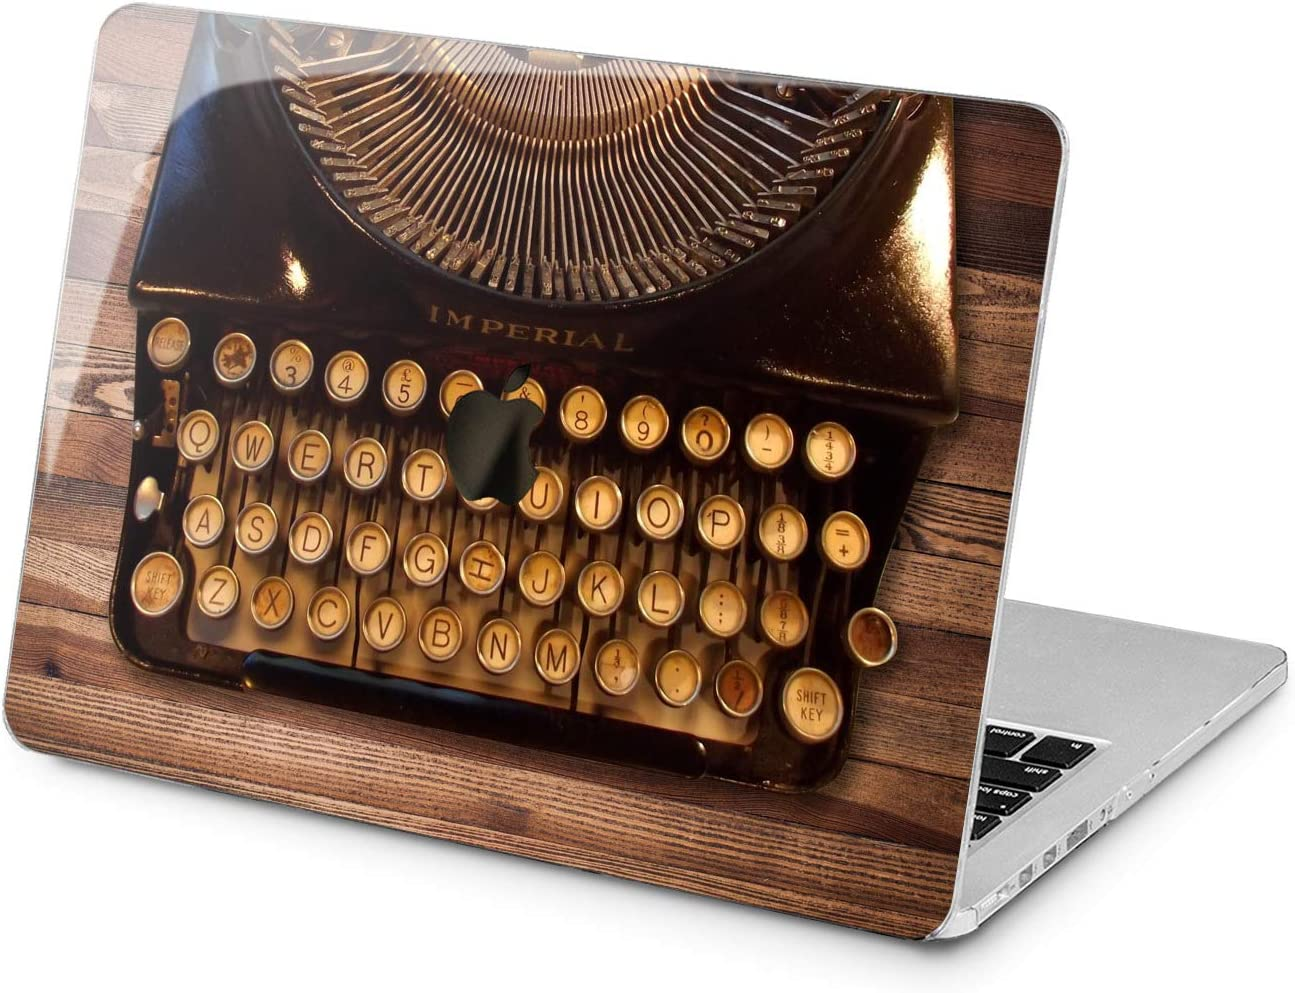 """Cavka Hard Shell Case for Apple MacBook Pro 13"""" 2019 15"""" 2018 Air 13"""" 2020 Retina 2015 Mac 11"""" Mac 12"""" Print Texture Stylish Brown Protective Book Cover Laptop Vintage Classy Cover Plastic Design"""